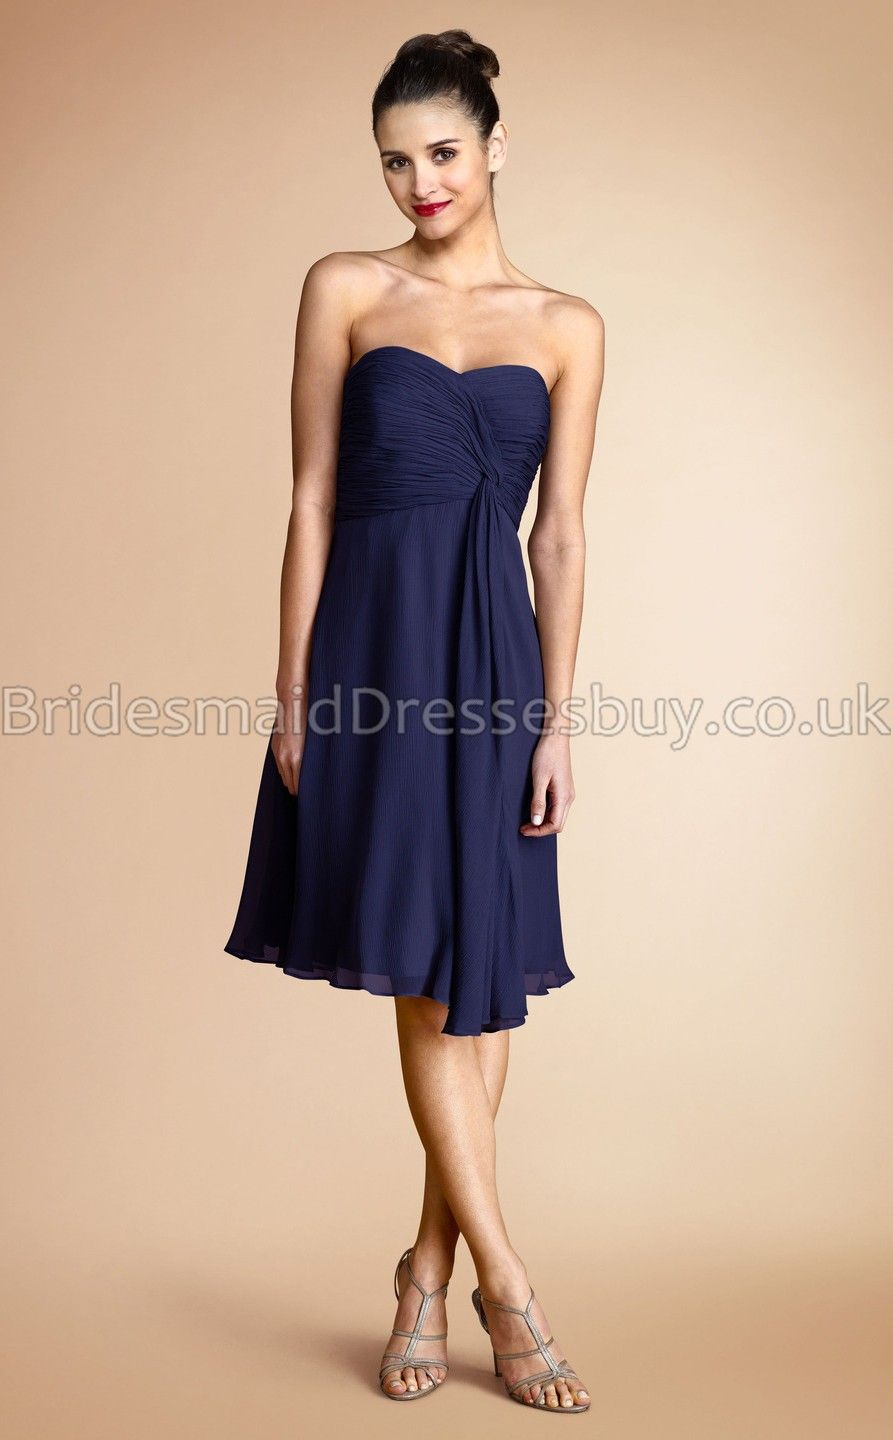 A Line Sweetheart Navy Blue Chiffon Short Mini Bridesmaid DressesUKBD03 790